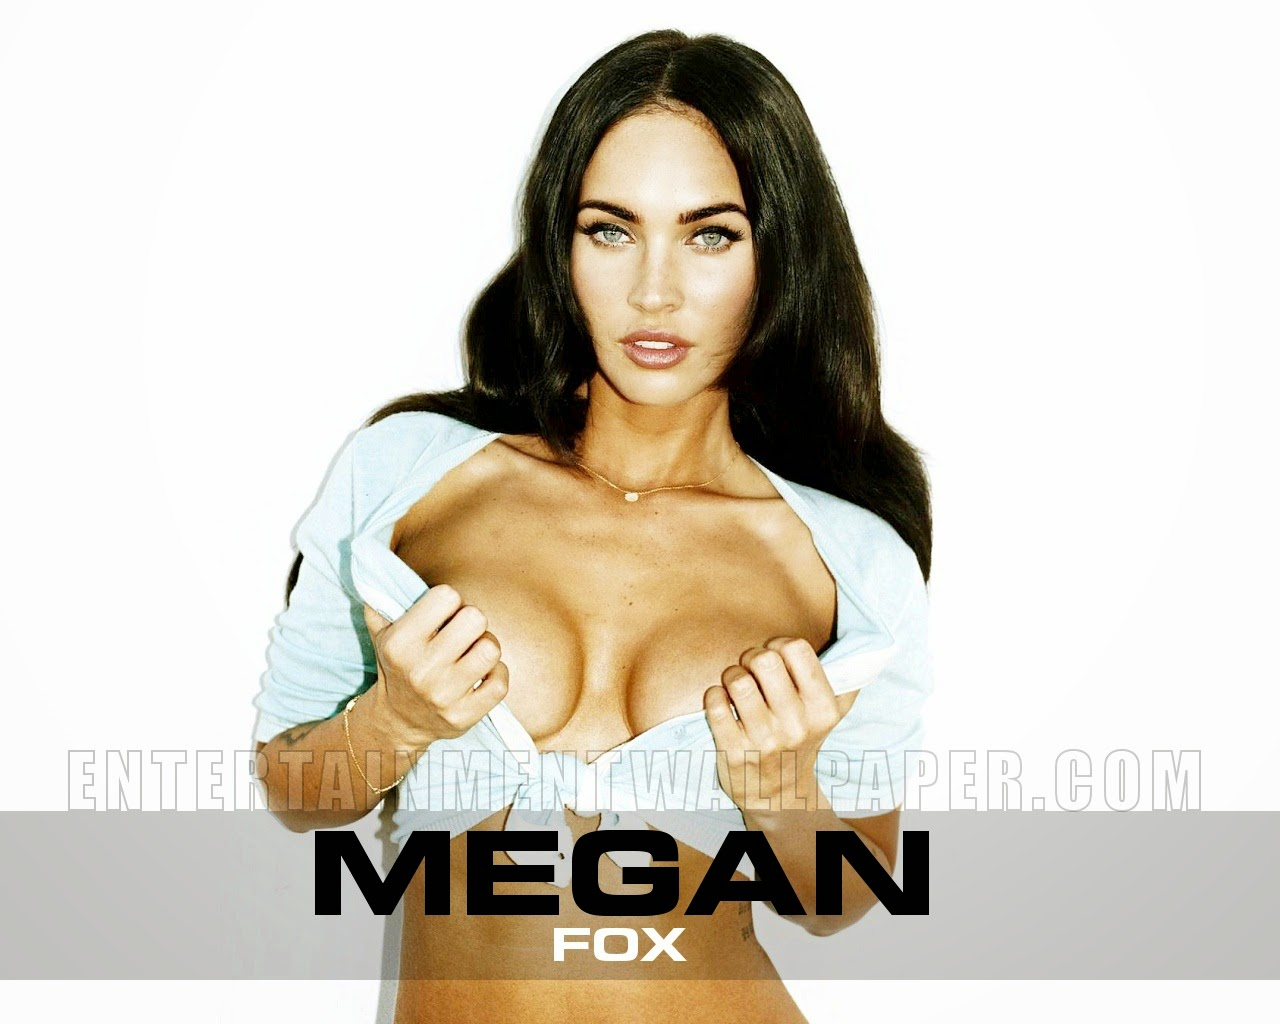 24 sexy megan fox wallpapers hd 11 sexy photos tapandaola111 24 sexy megan fox wallpapers hd 11 sexy photos voltagebd Image collections